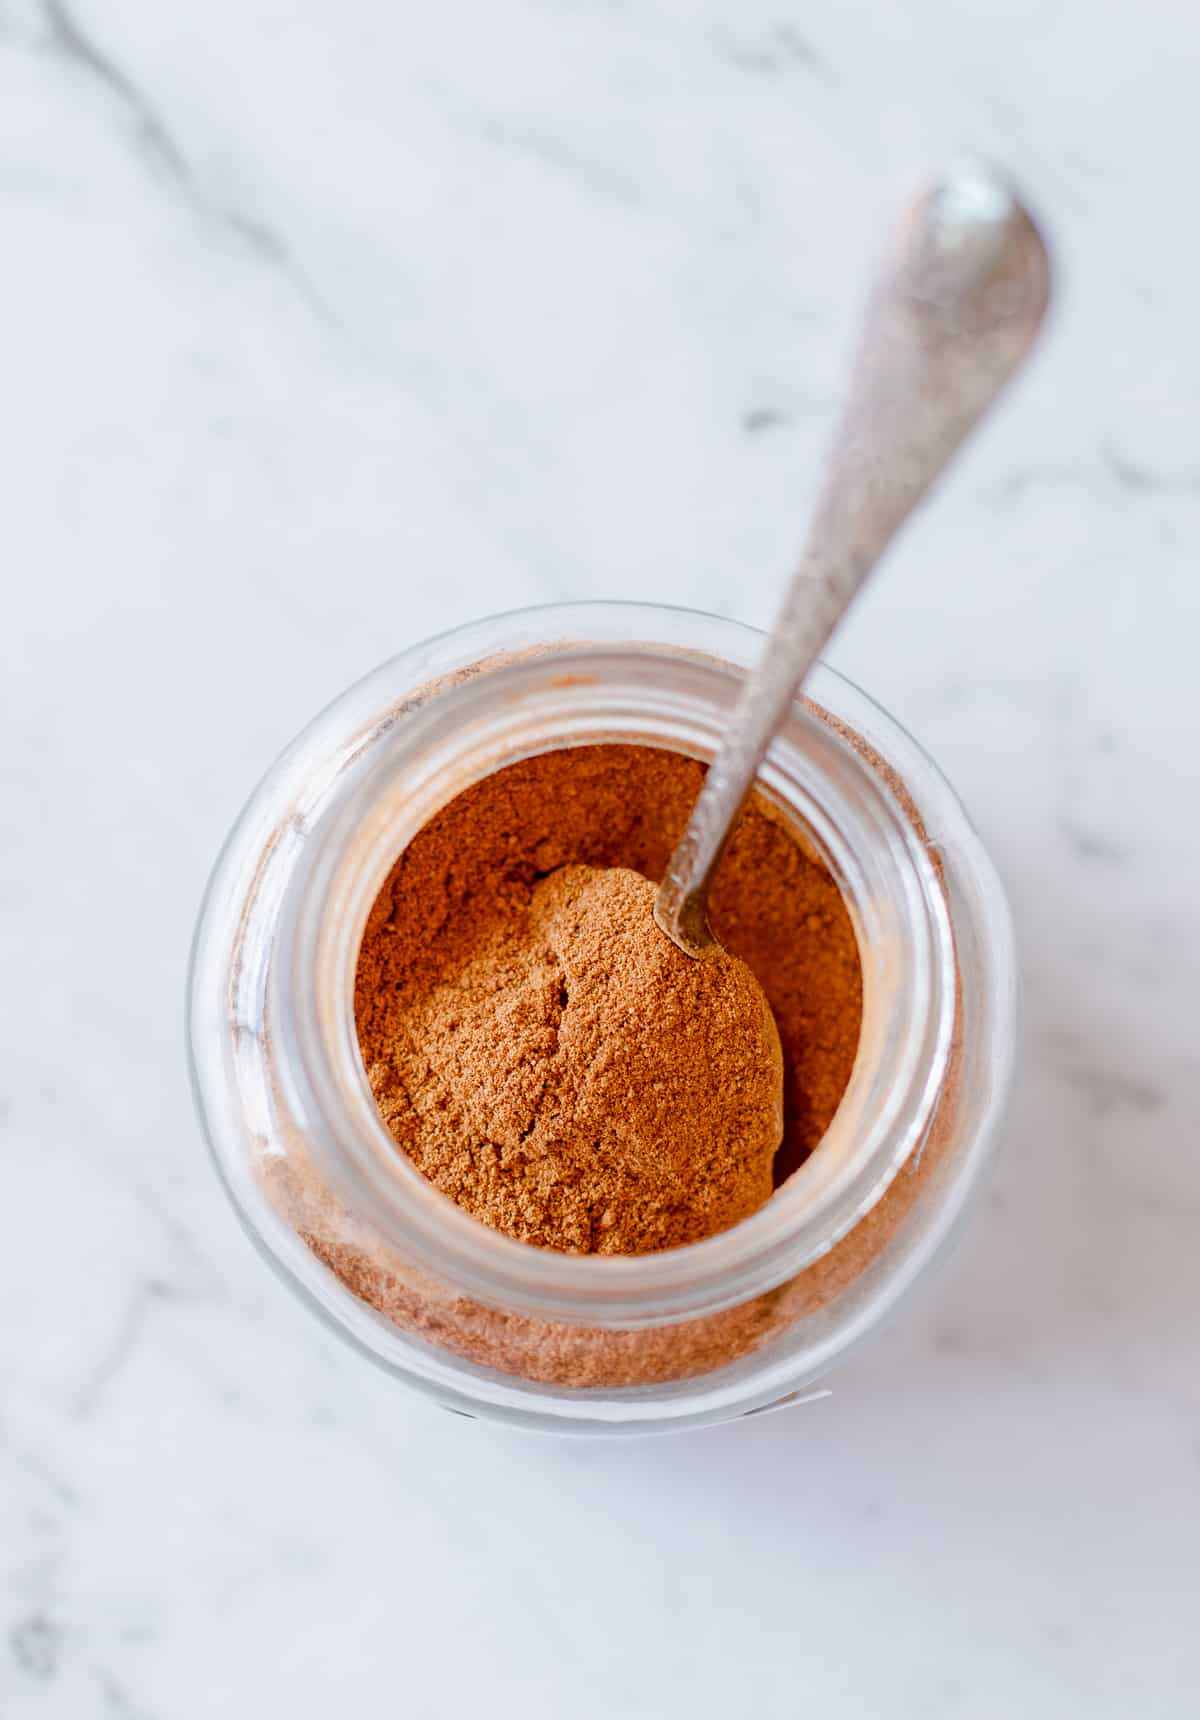 DIY Pumpkin Spice Mix in a glass jar